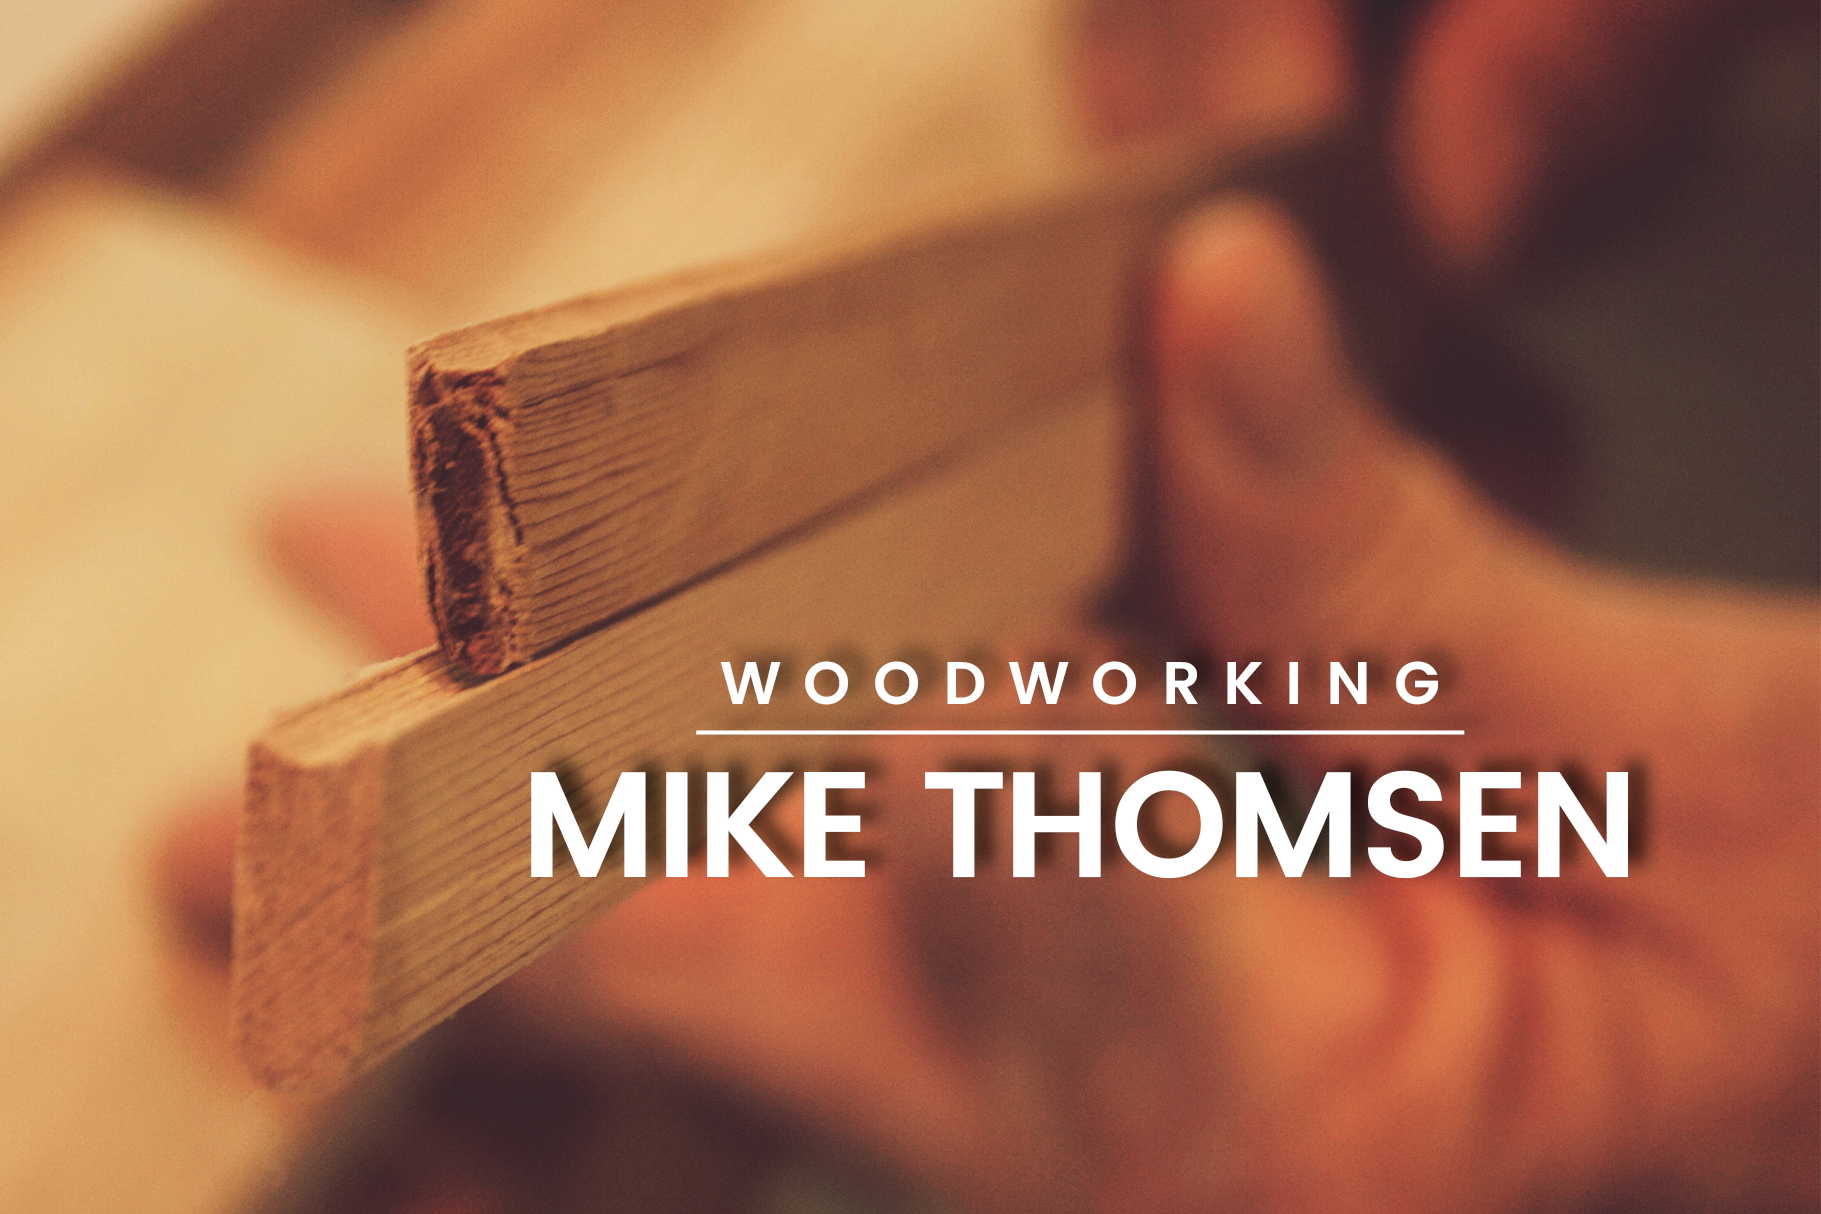 Mike Thomsen - Woodworking